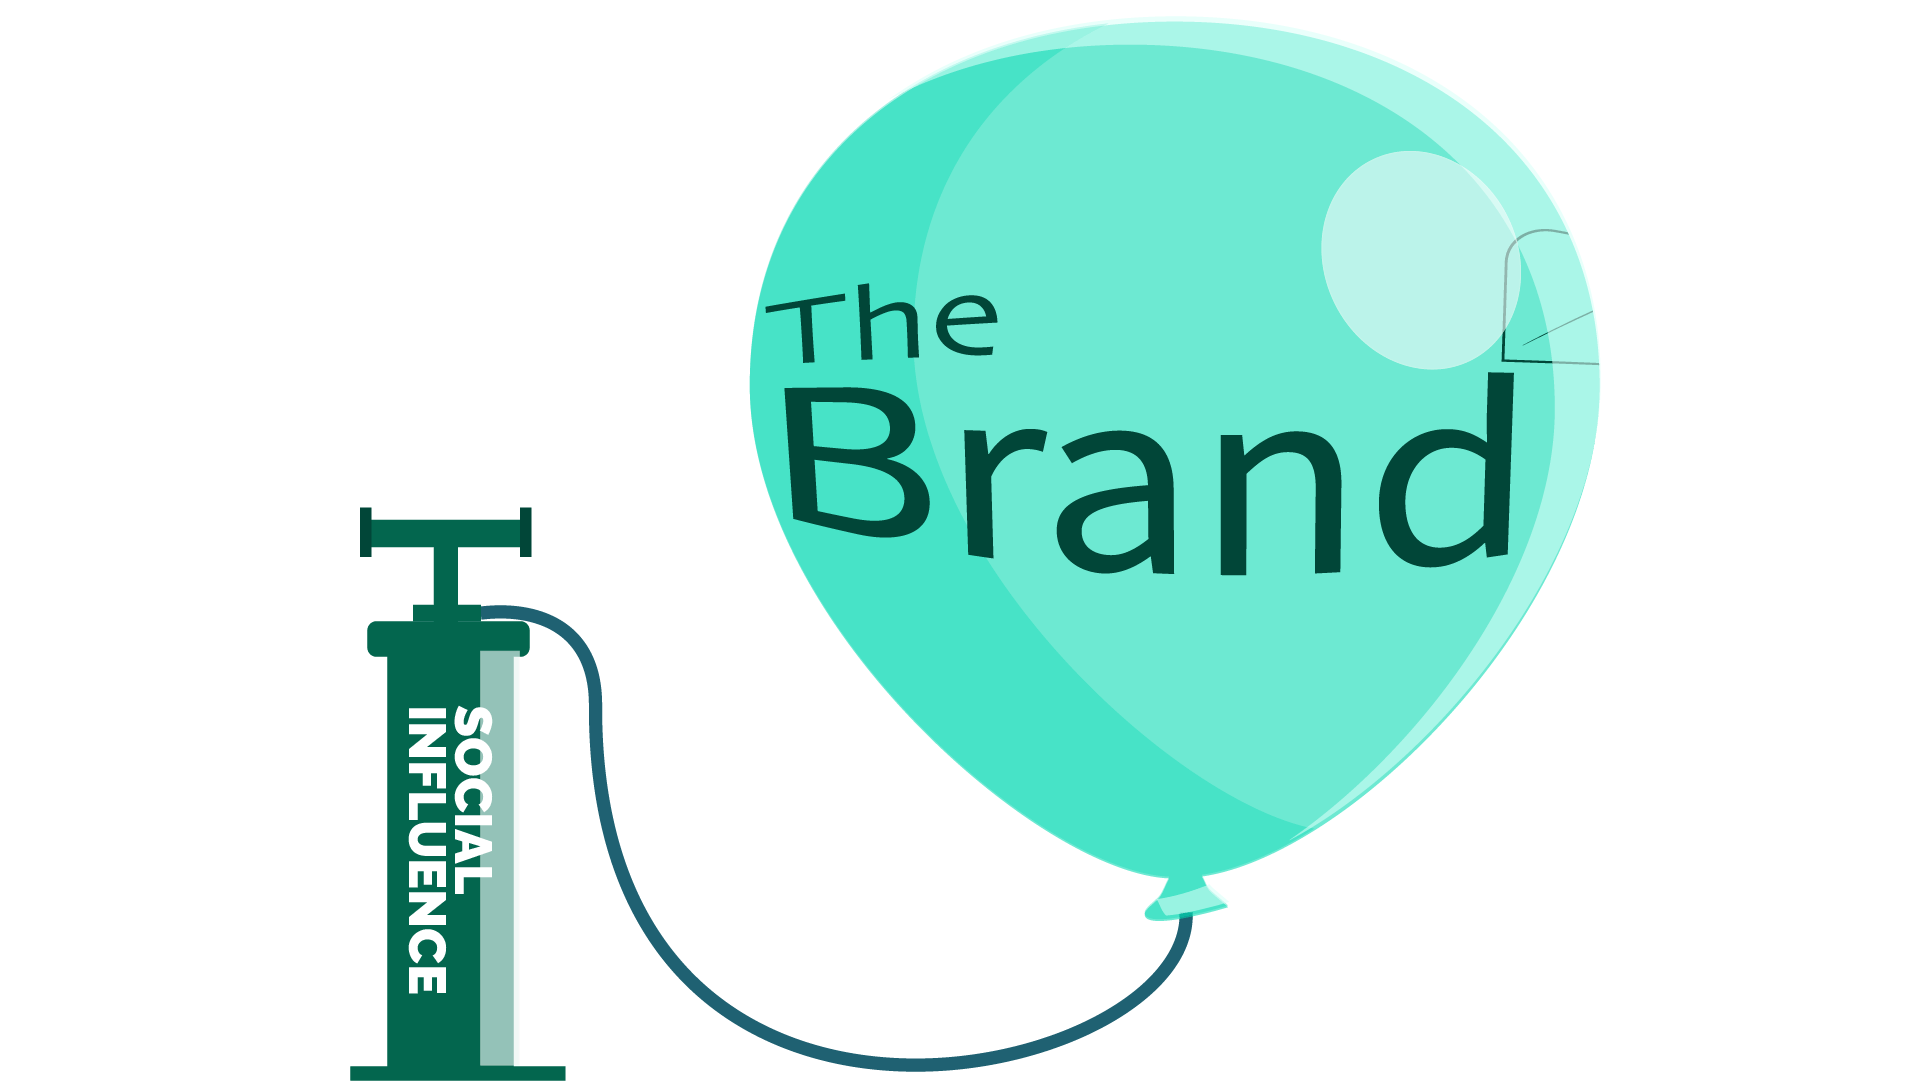 social influence can grow your brand - image of 'brand' balloon being inflated by a 'social influence' pump